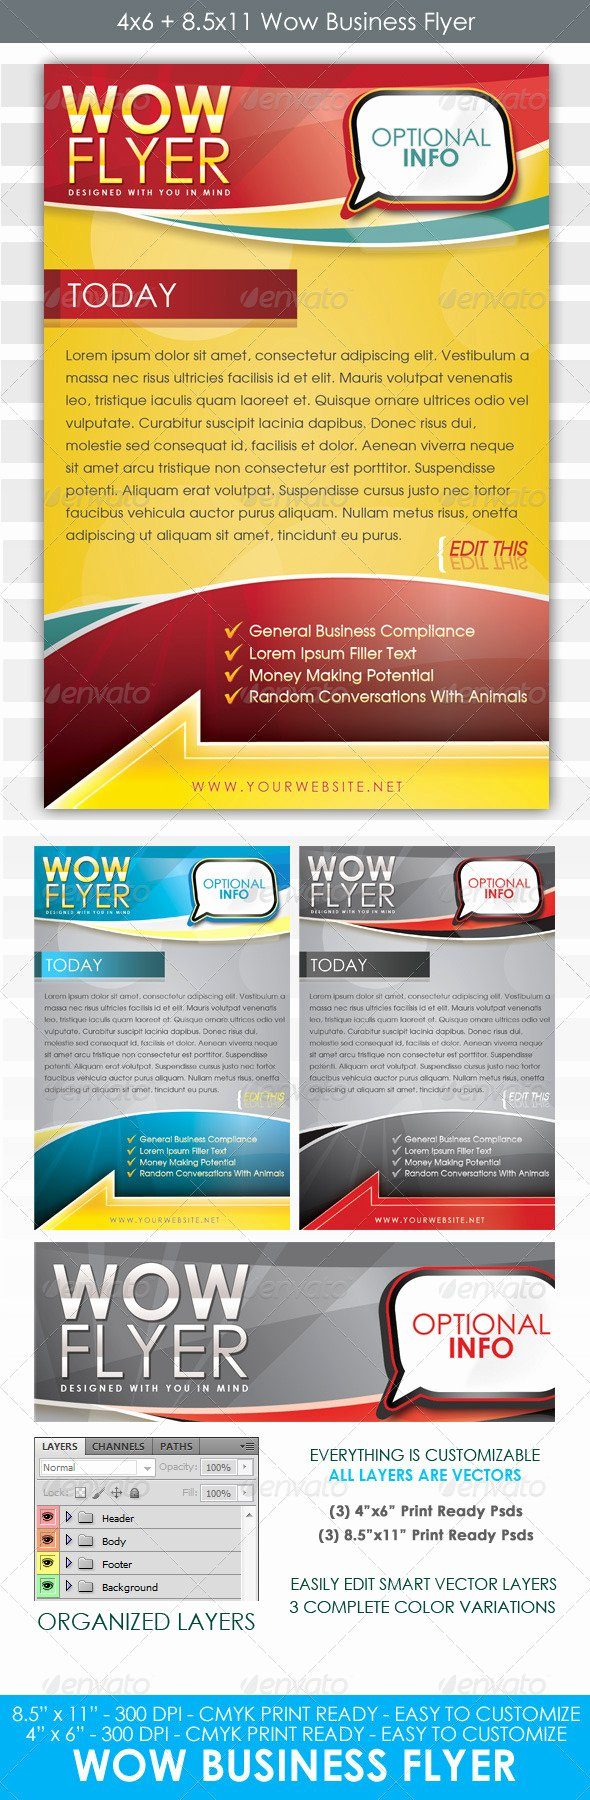 4x6 Flyer Template Elegant Wow Flyer 4x6 and 8 5x11 Business Template